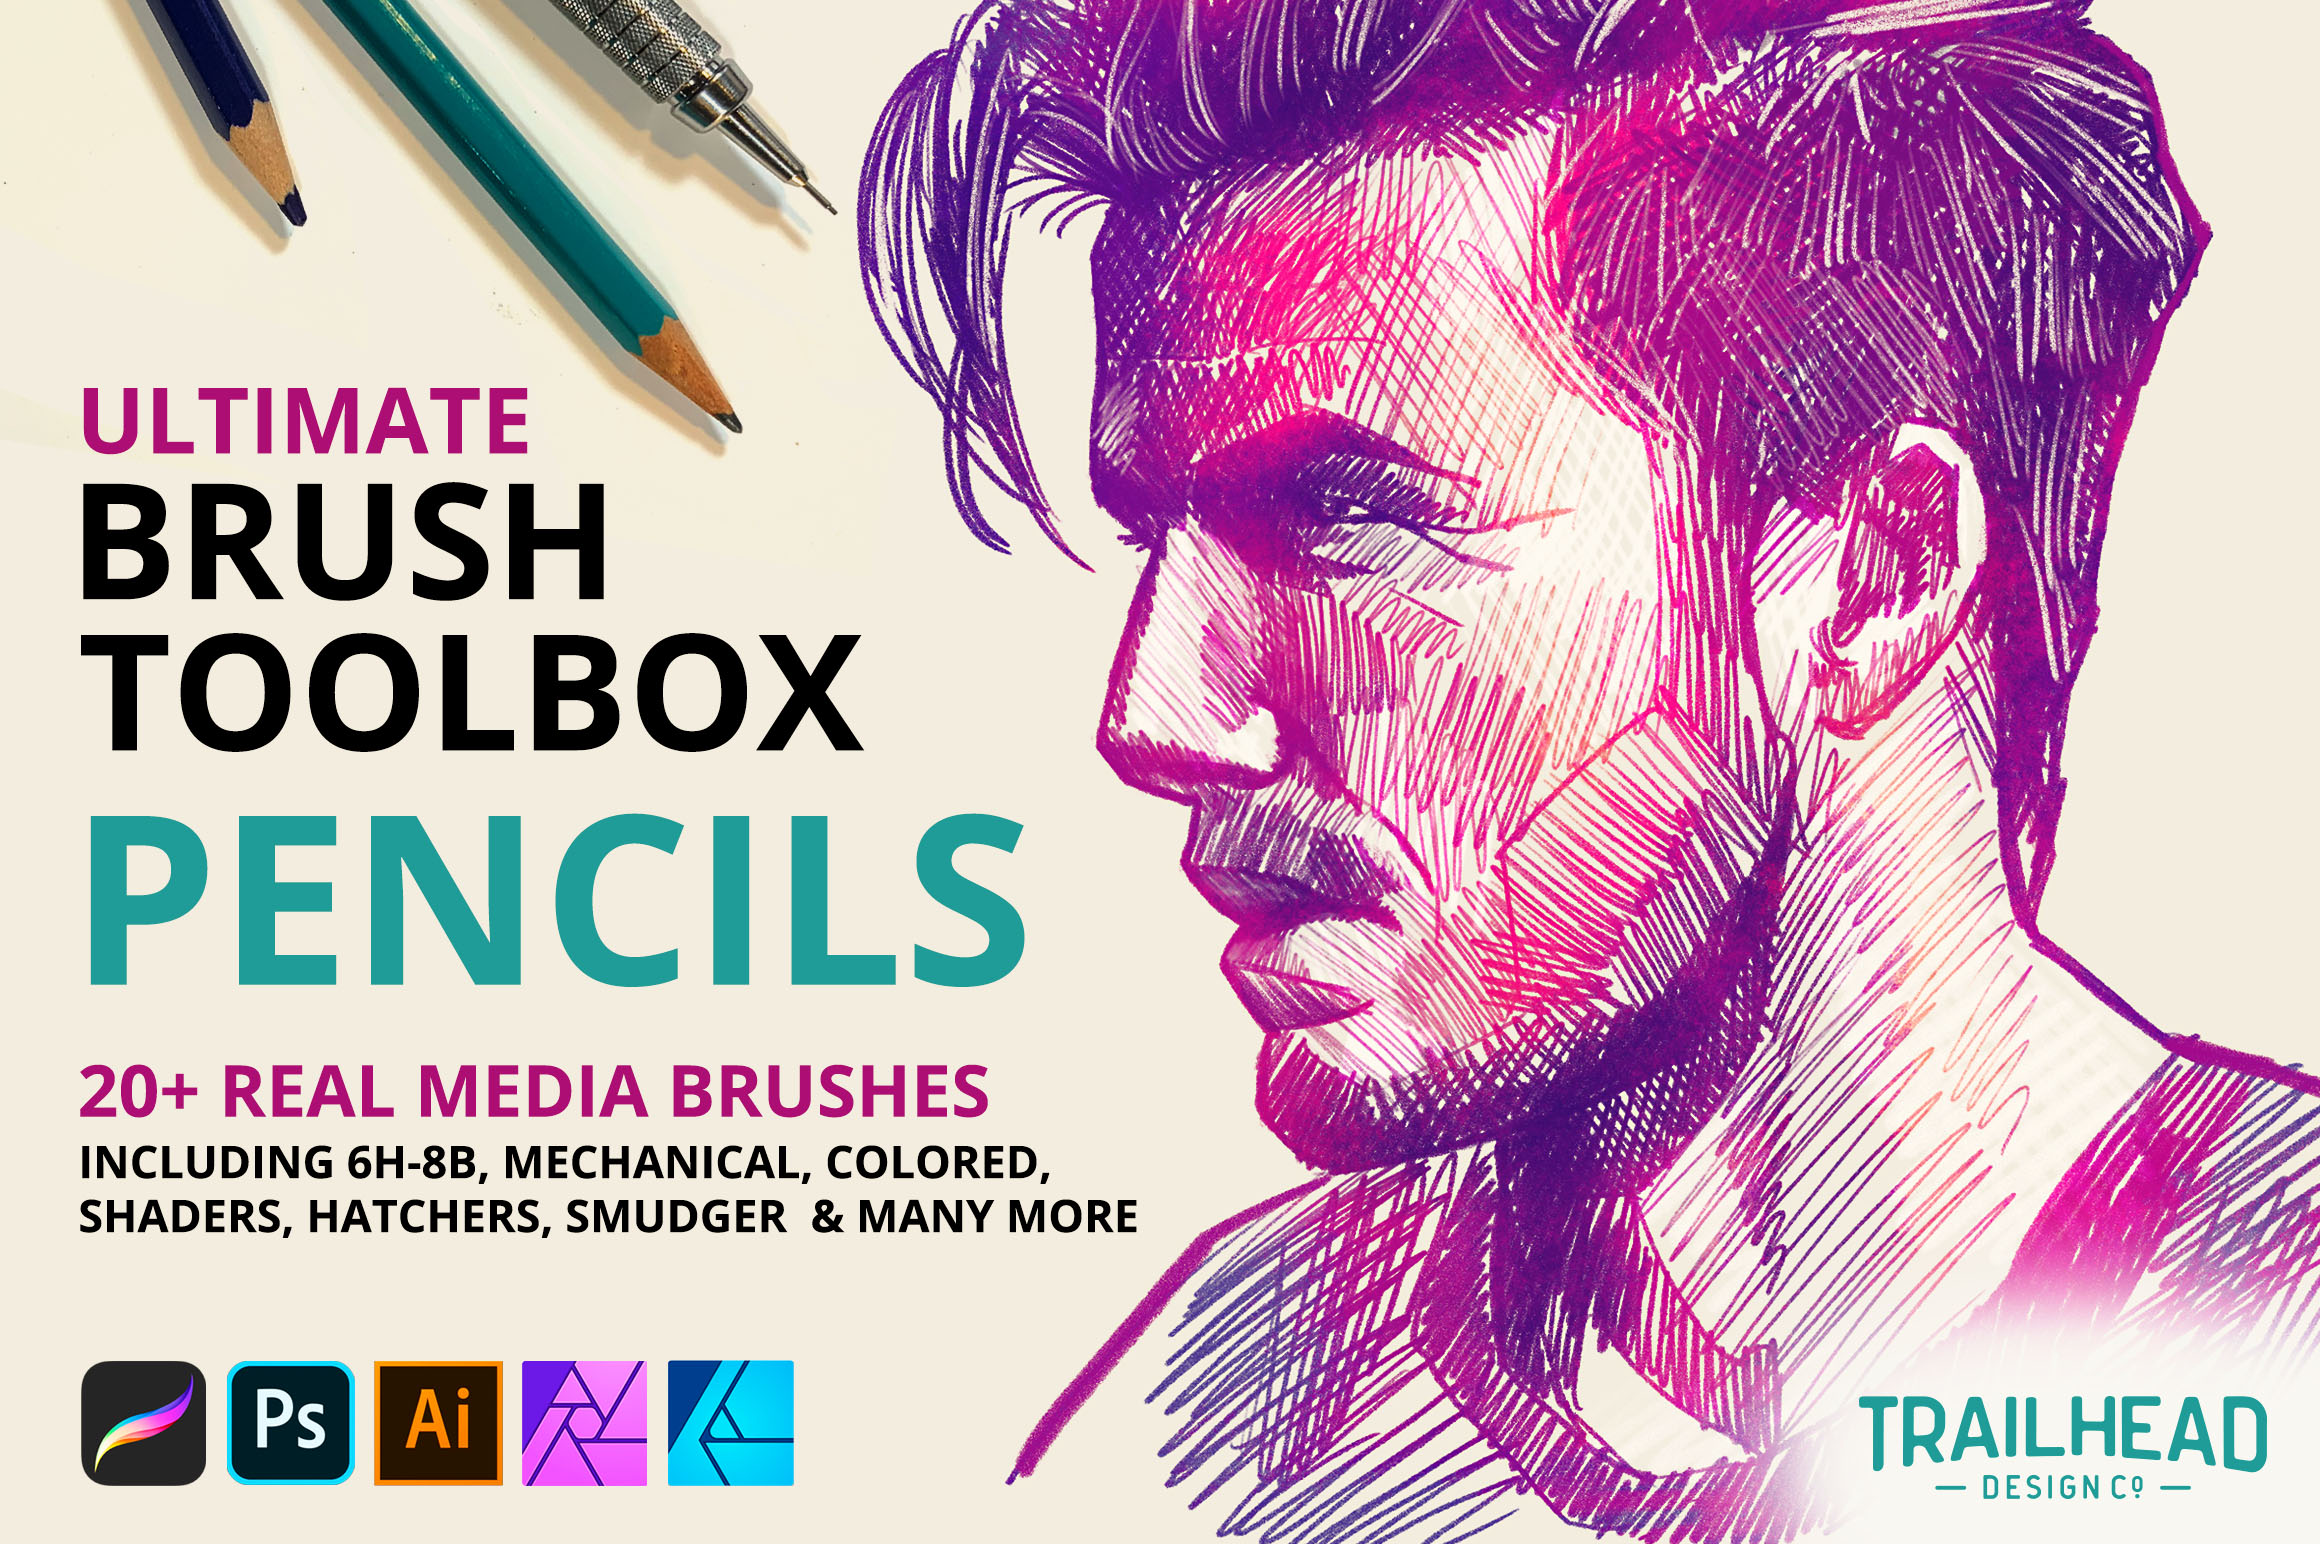 Ultimate Brush Toolbox - Pencils